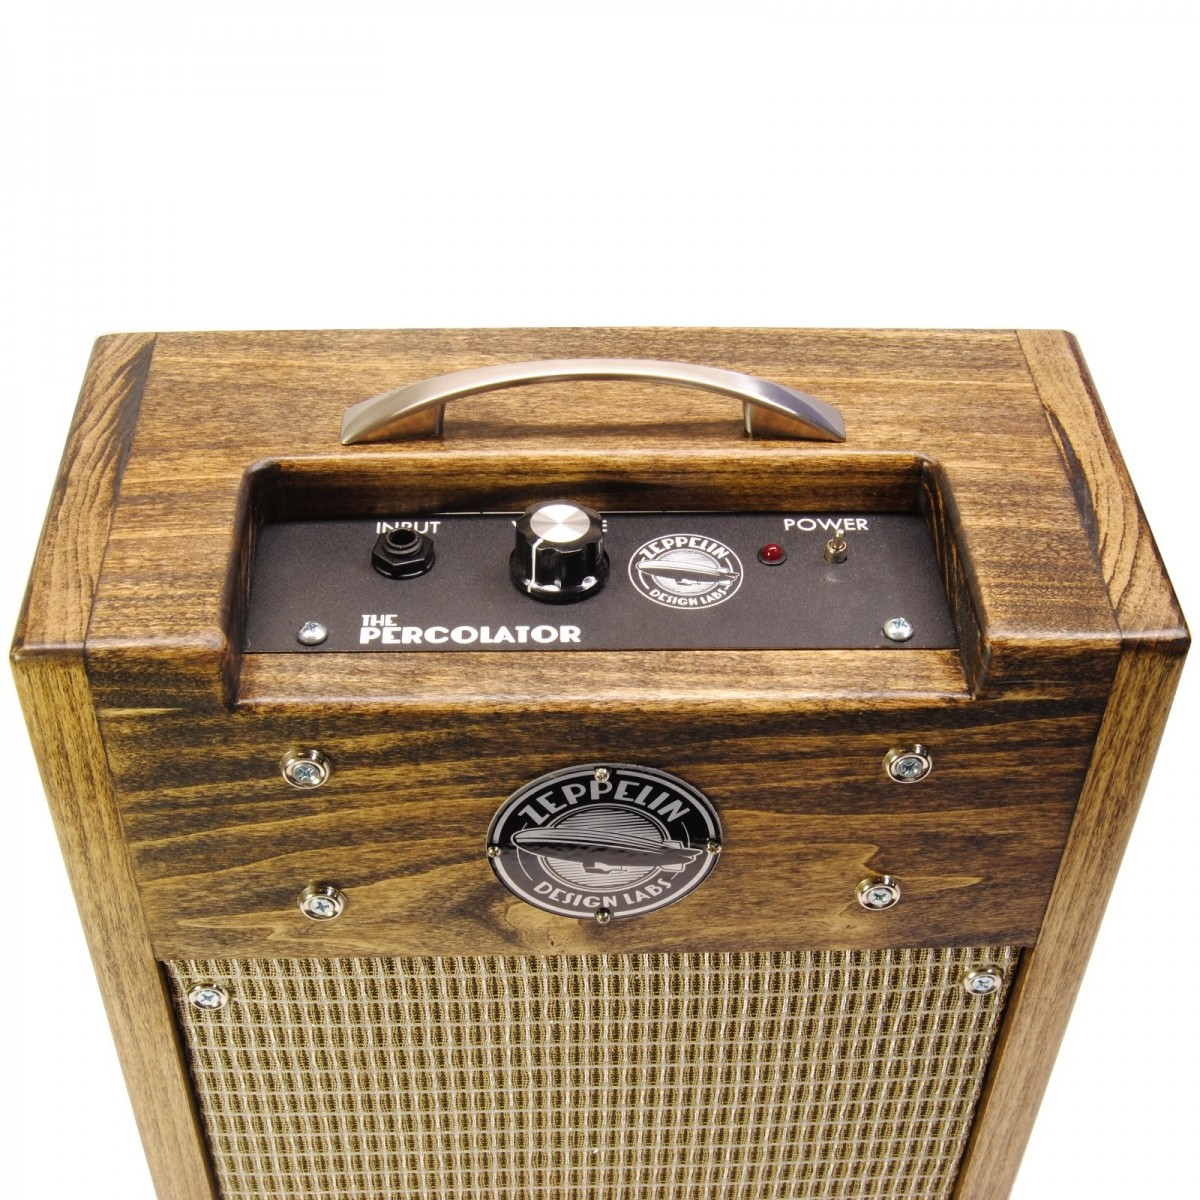 Best Bedroom Tube Amp : percolator 2w 1x8 tube combo zeppelin design labs ~ Vivirlamusica.com Haus und Dekorationen